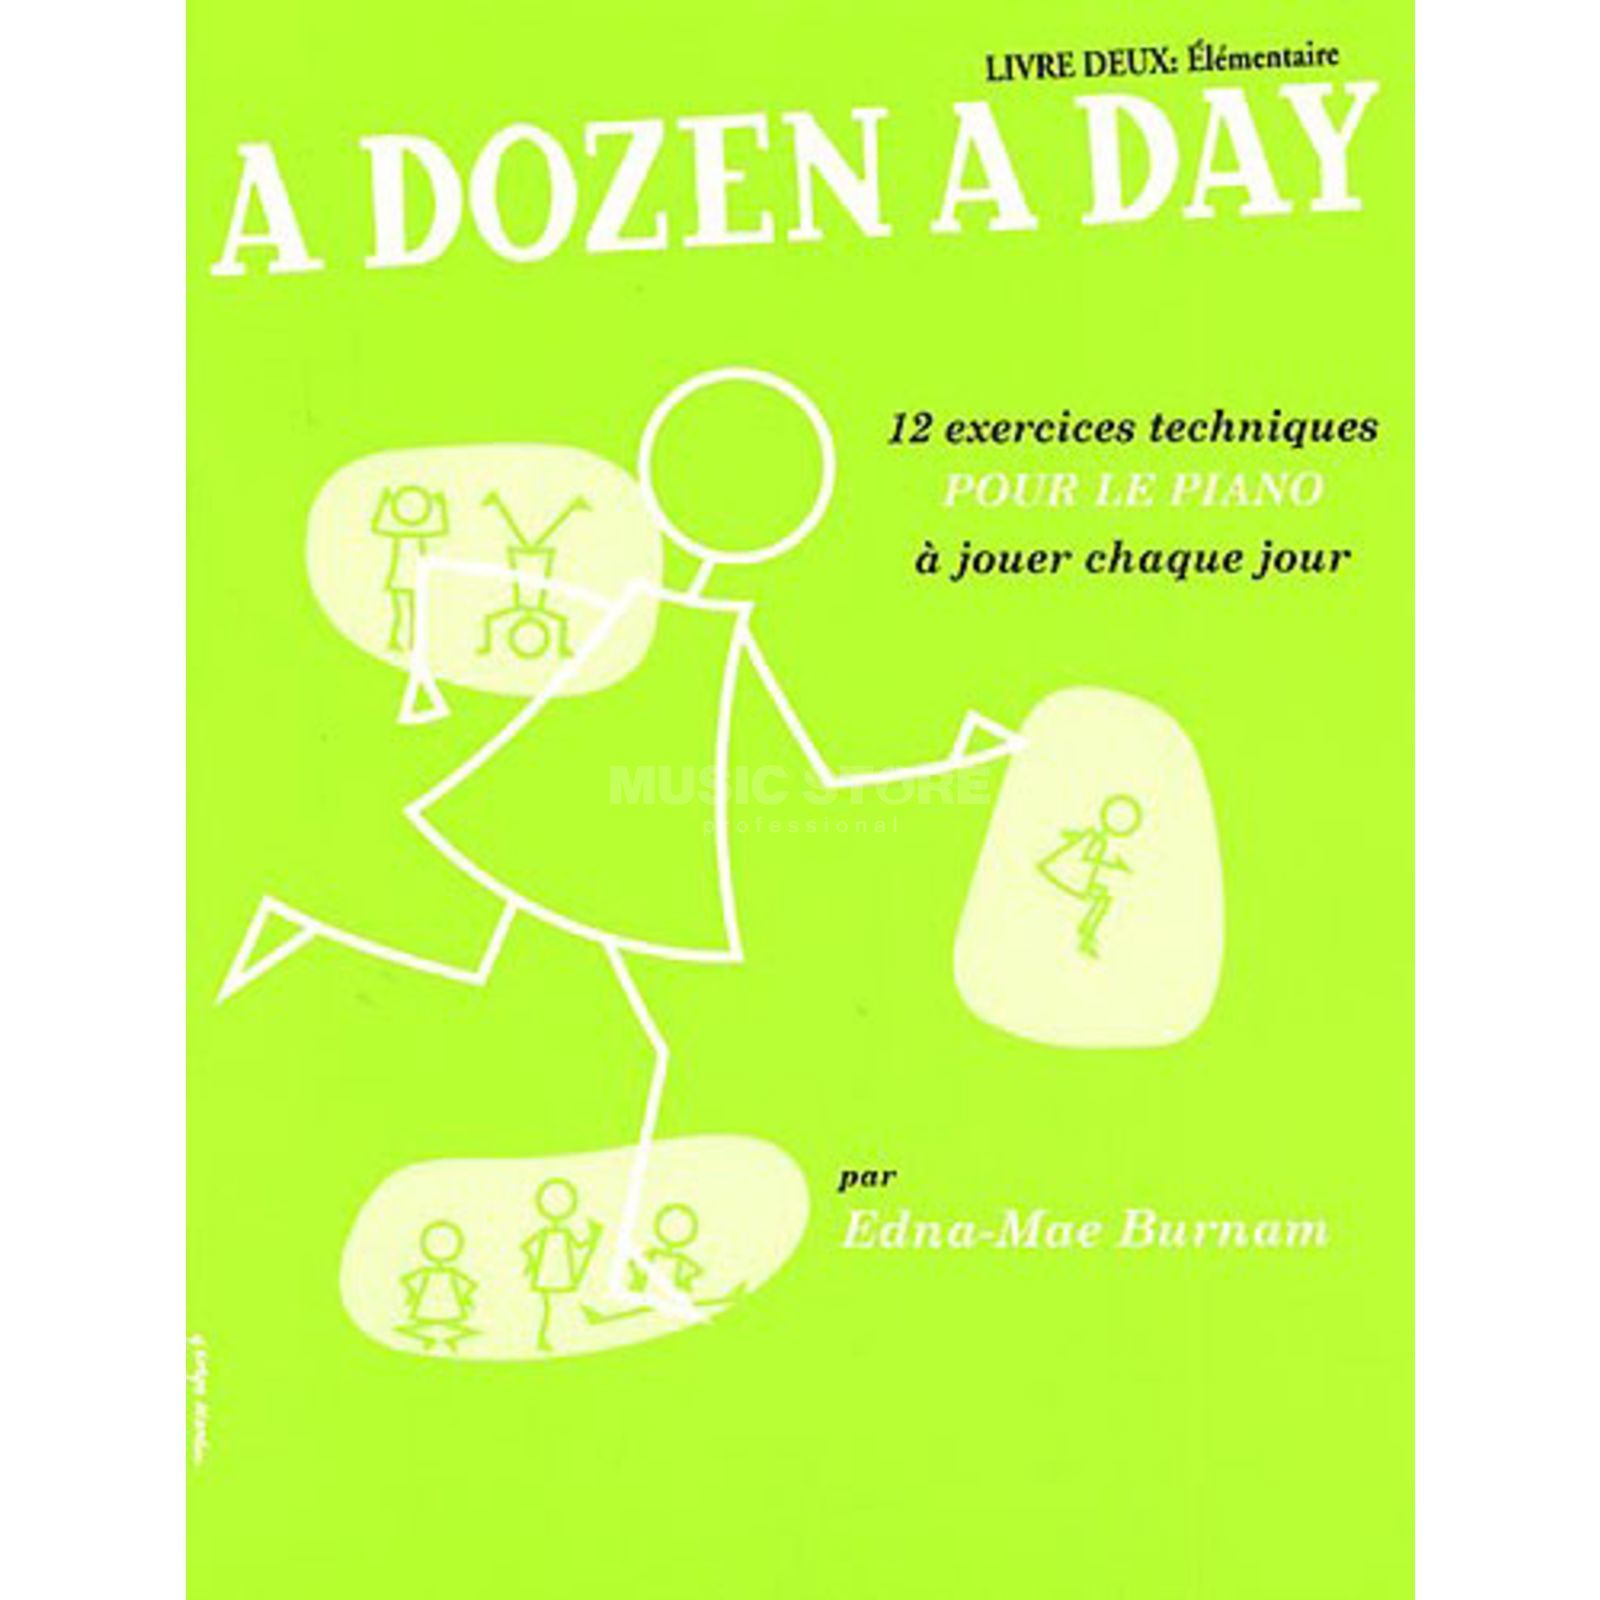 Editions Musicales Francaises A Dozen A Day: Livre 2 Elementaire, French, Piano Produktbillede